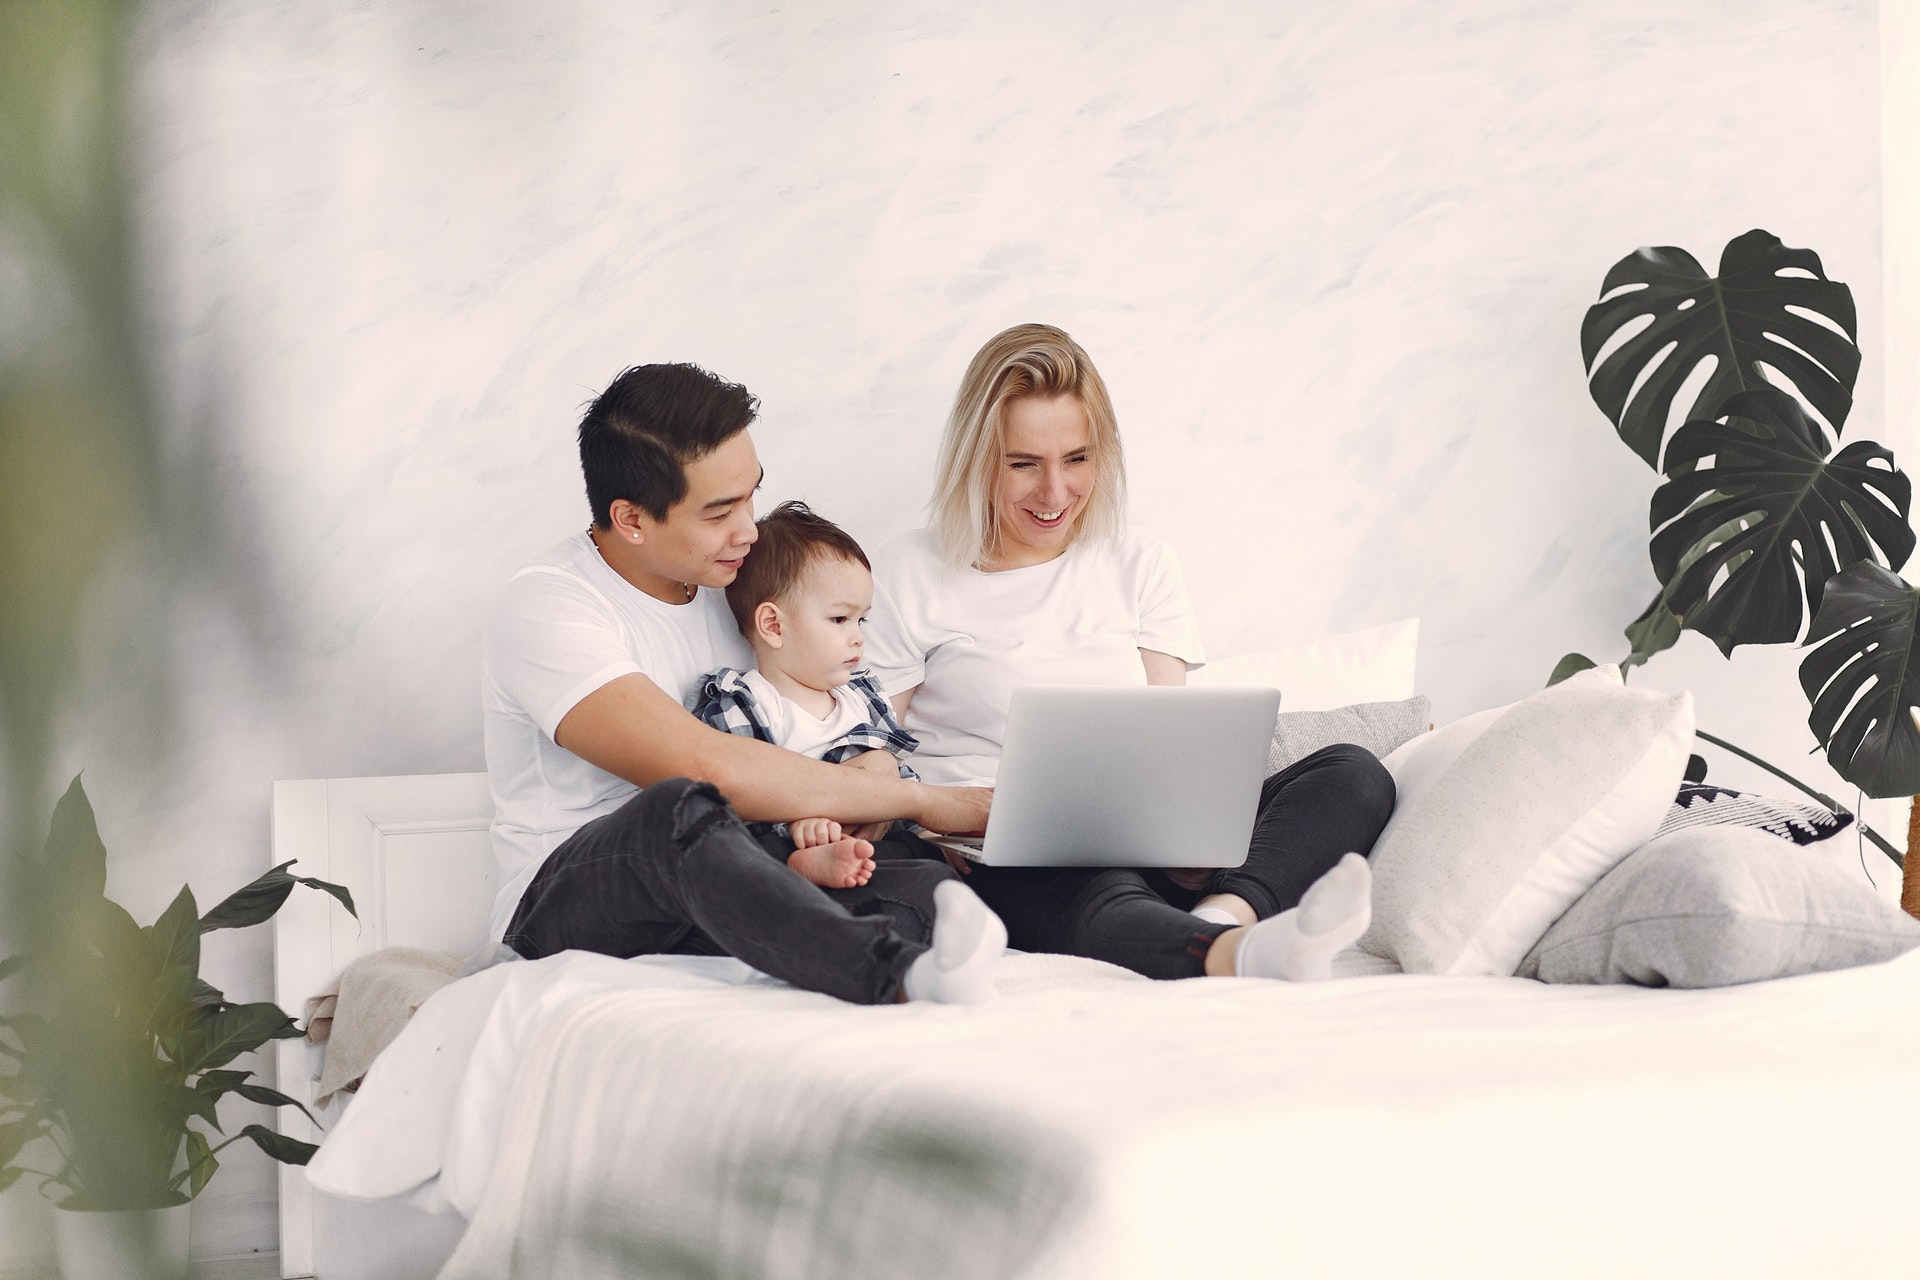 man-and-woman-sitting-on-white-bed-using-laptop-computer-3912387